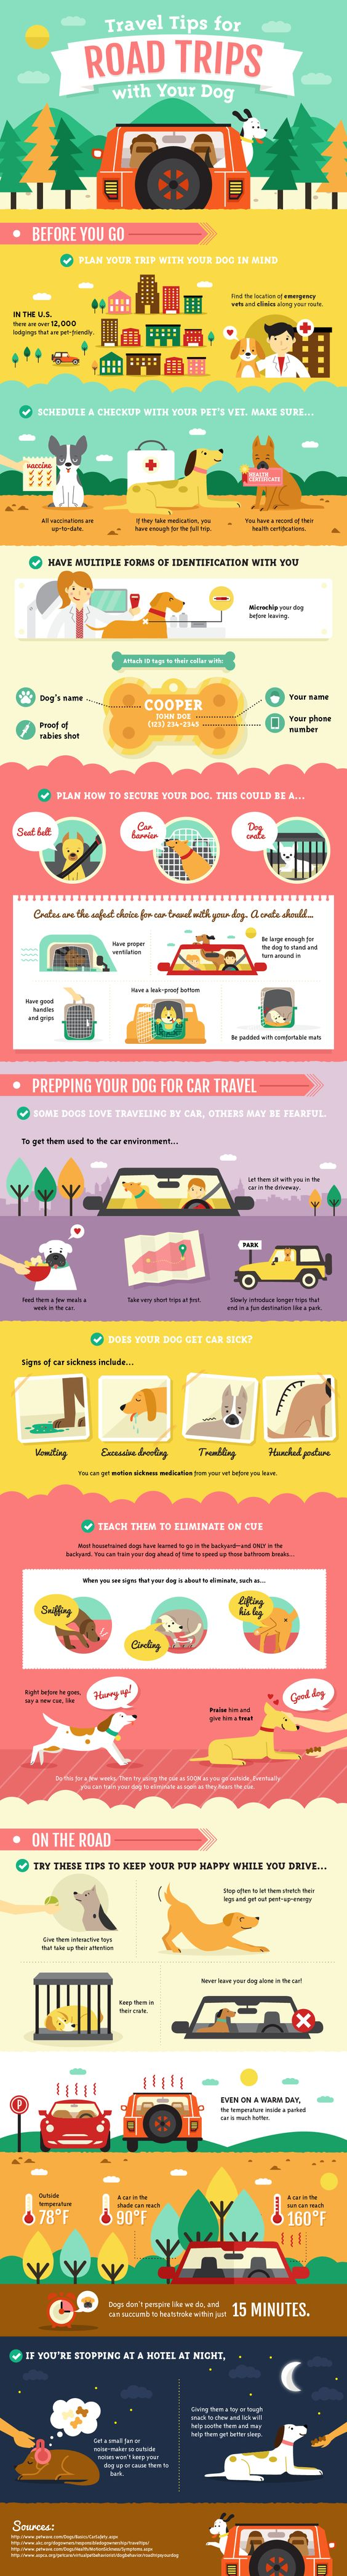 Pet travel can be a fun and rewarding experience with the proper preparation, but without this preparation it can be a trying task for you and your pooch. To prepare you for the potential pitfalls of traveling with pups, we present to you a guide to introducing puppies to the car and an #infographic of Travel Tips for Road Trips- both by our good friend, Amber Kingsley. #dog